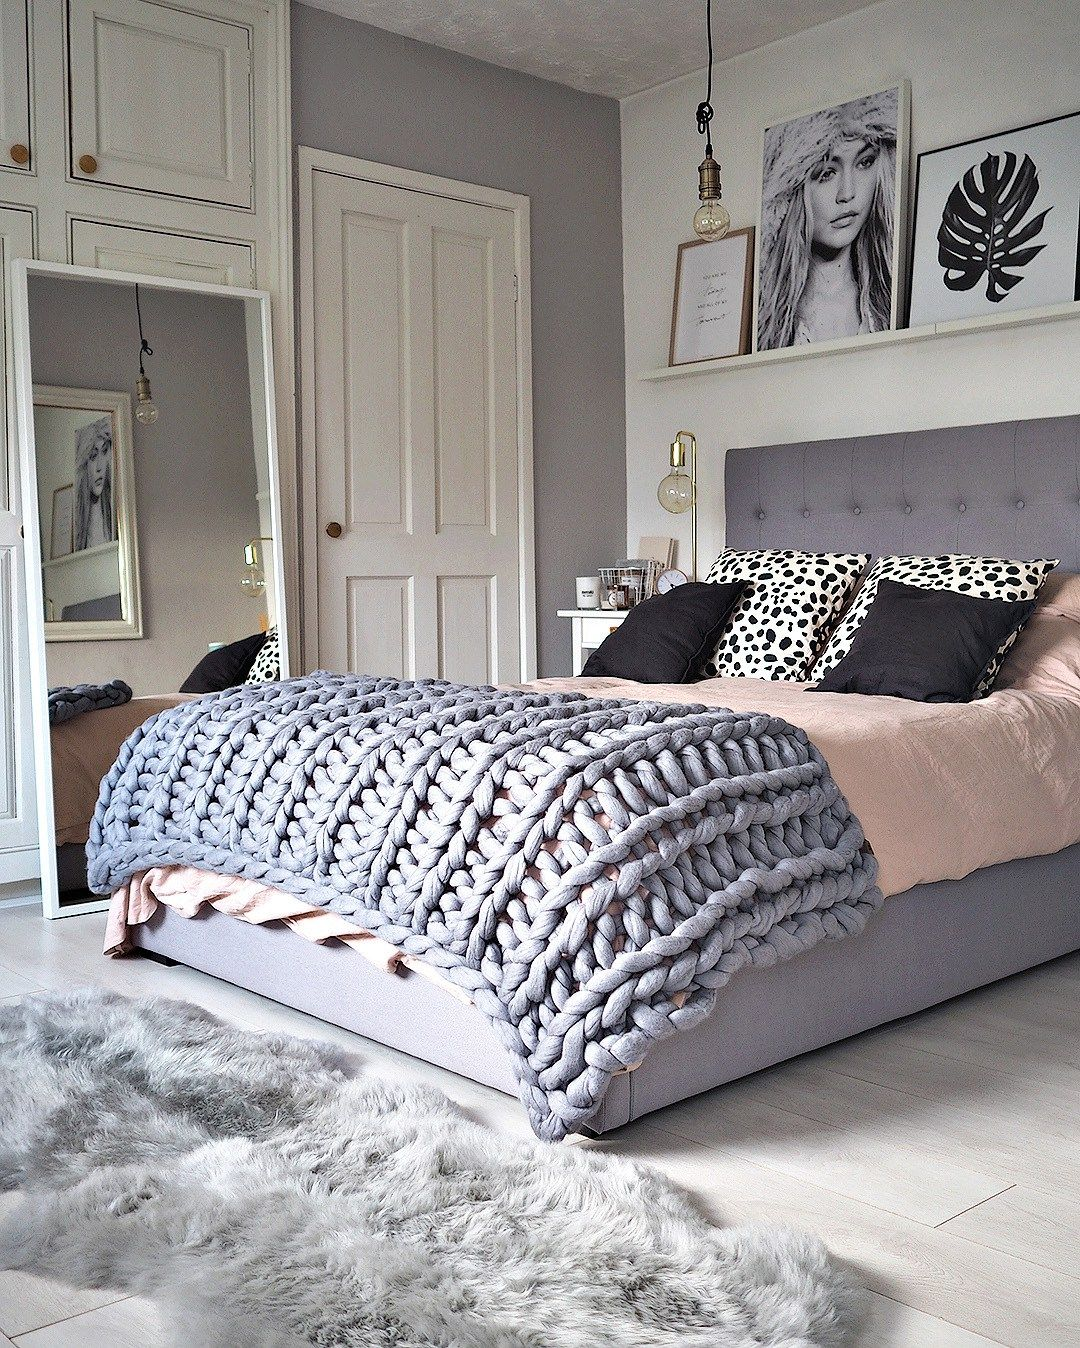 Scandi Bedroom In Grey Gold And Pink And Large Knit Blanket Bedroom Inspiration Scandinavian Bedroom Inspirations Bedroom Design